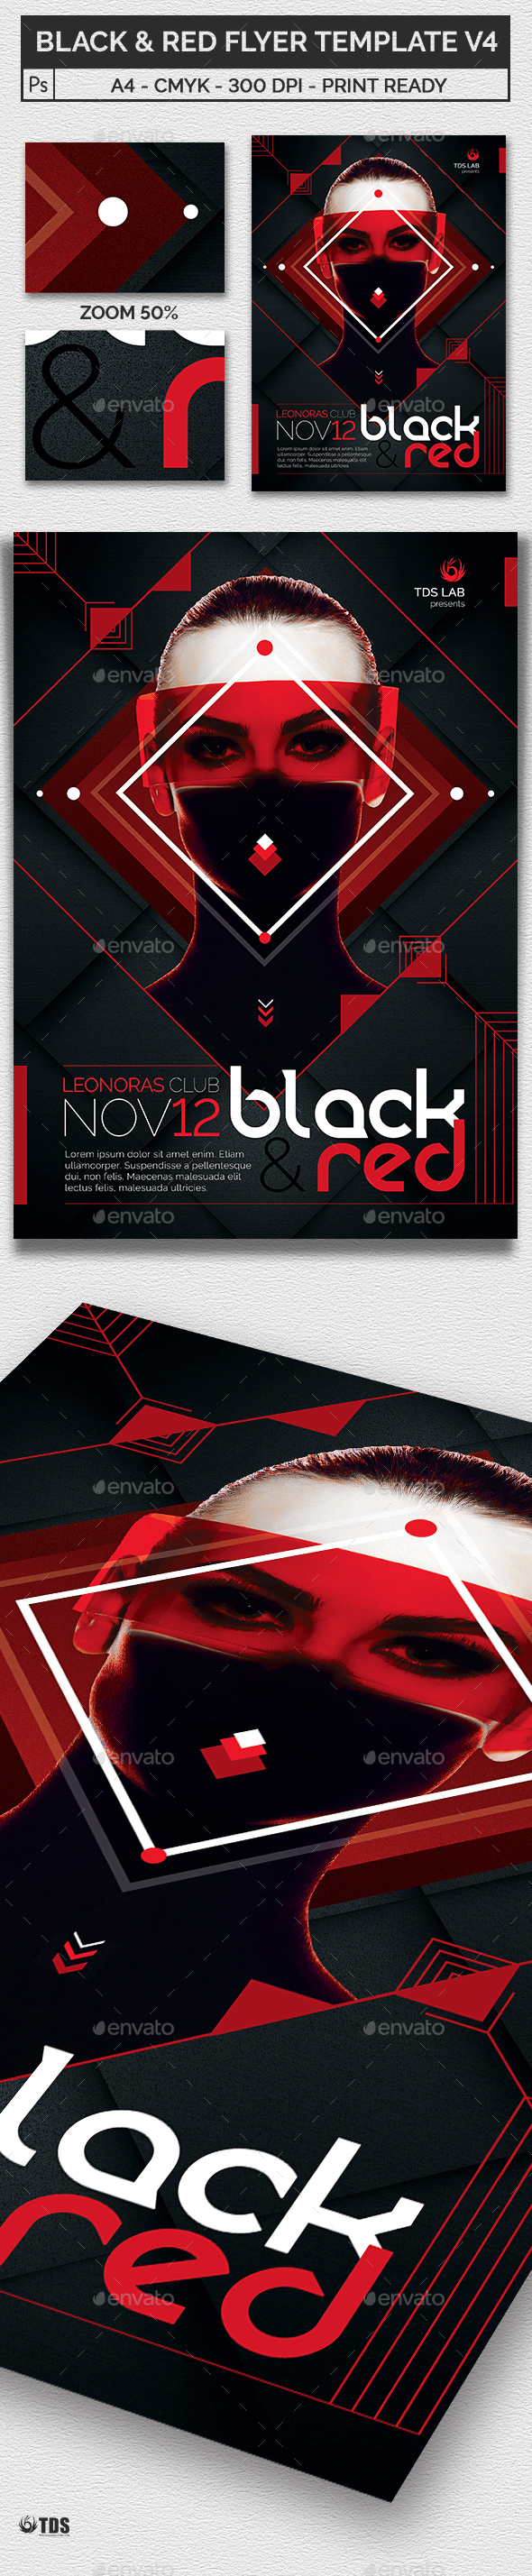 Black and Red Flyer Template V4 - Clubs & Parties Events